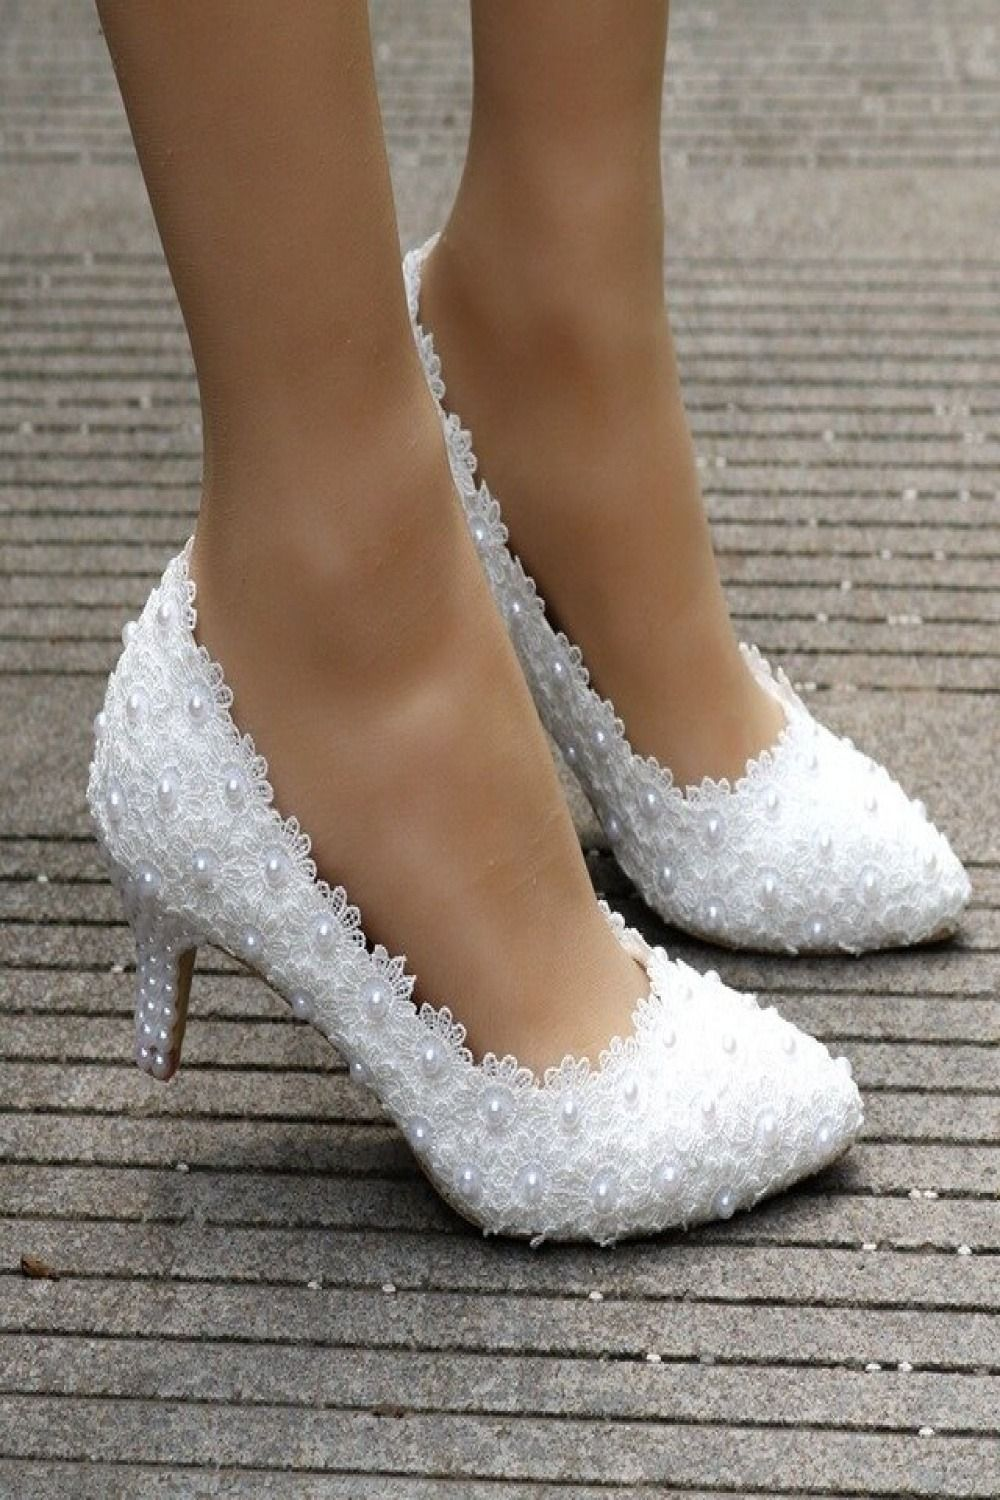 Kitten Heel Girl Dress Shoes White Pink Lace Flower Party Prom Wedding Bridal Bridesmaid Shoes Wedding Shoes Lace Bridal Shoes Wedding Shoes